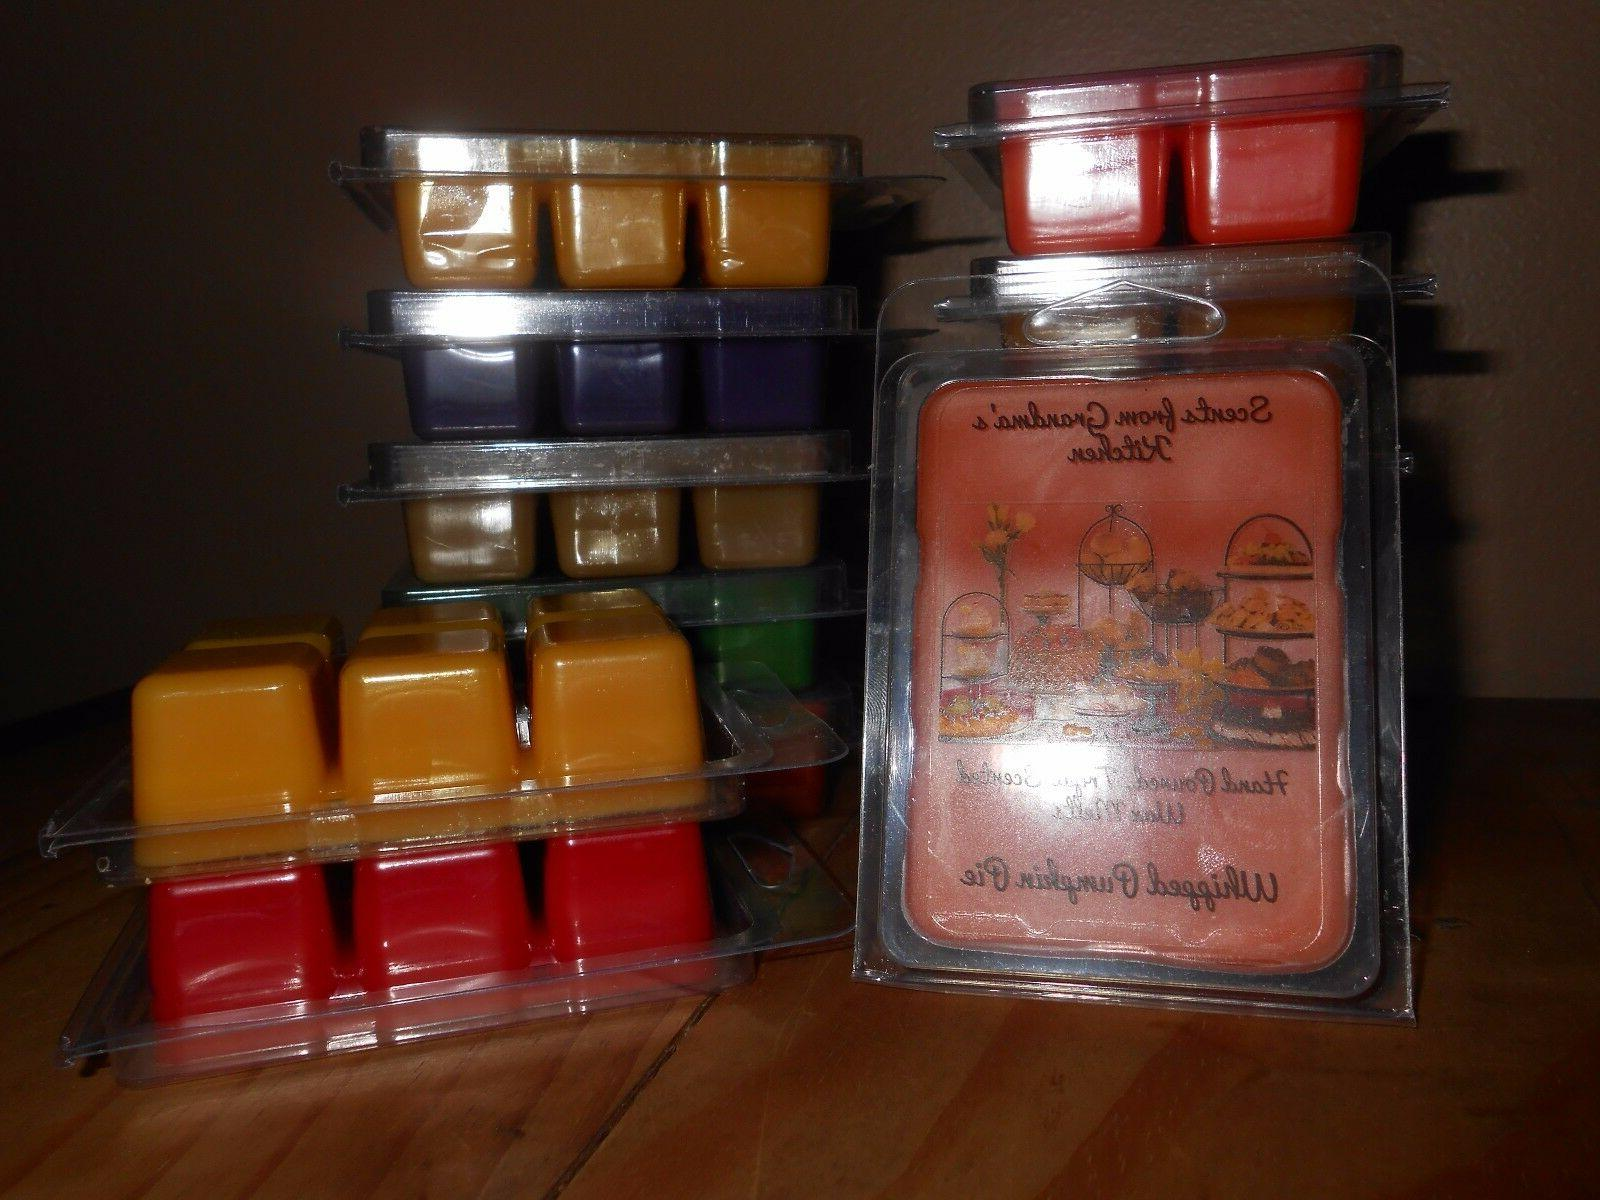 Scents From Grandma's *HEAVILY SCENTED* Wax